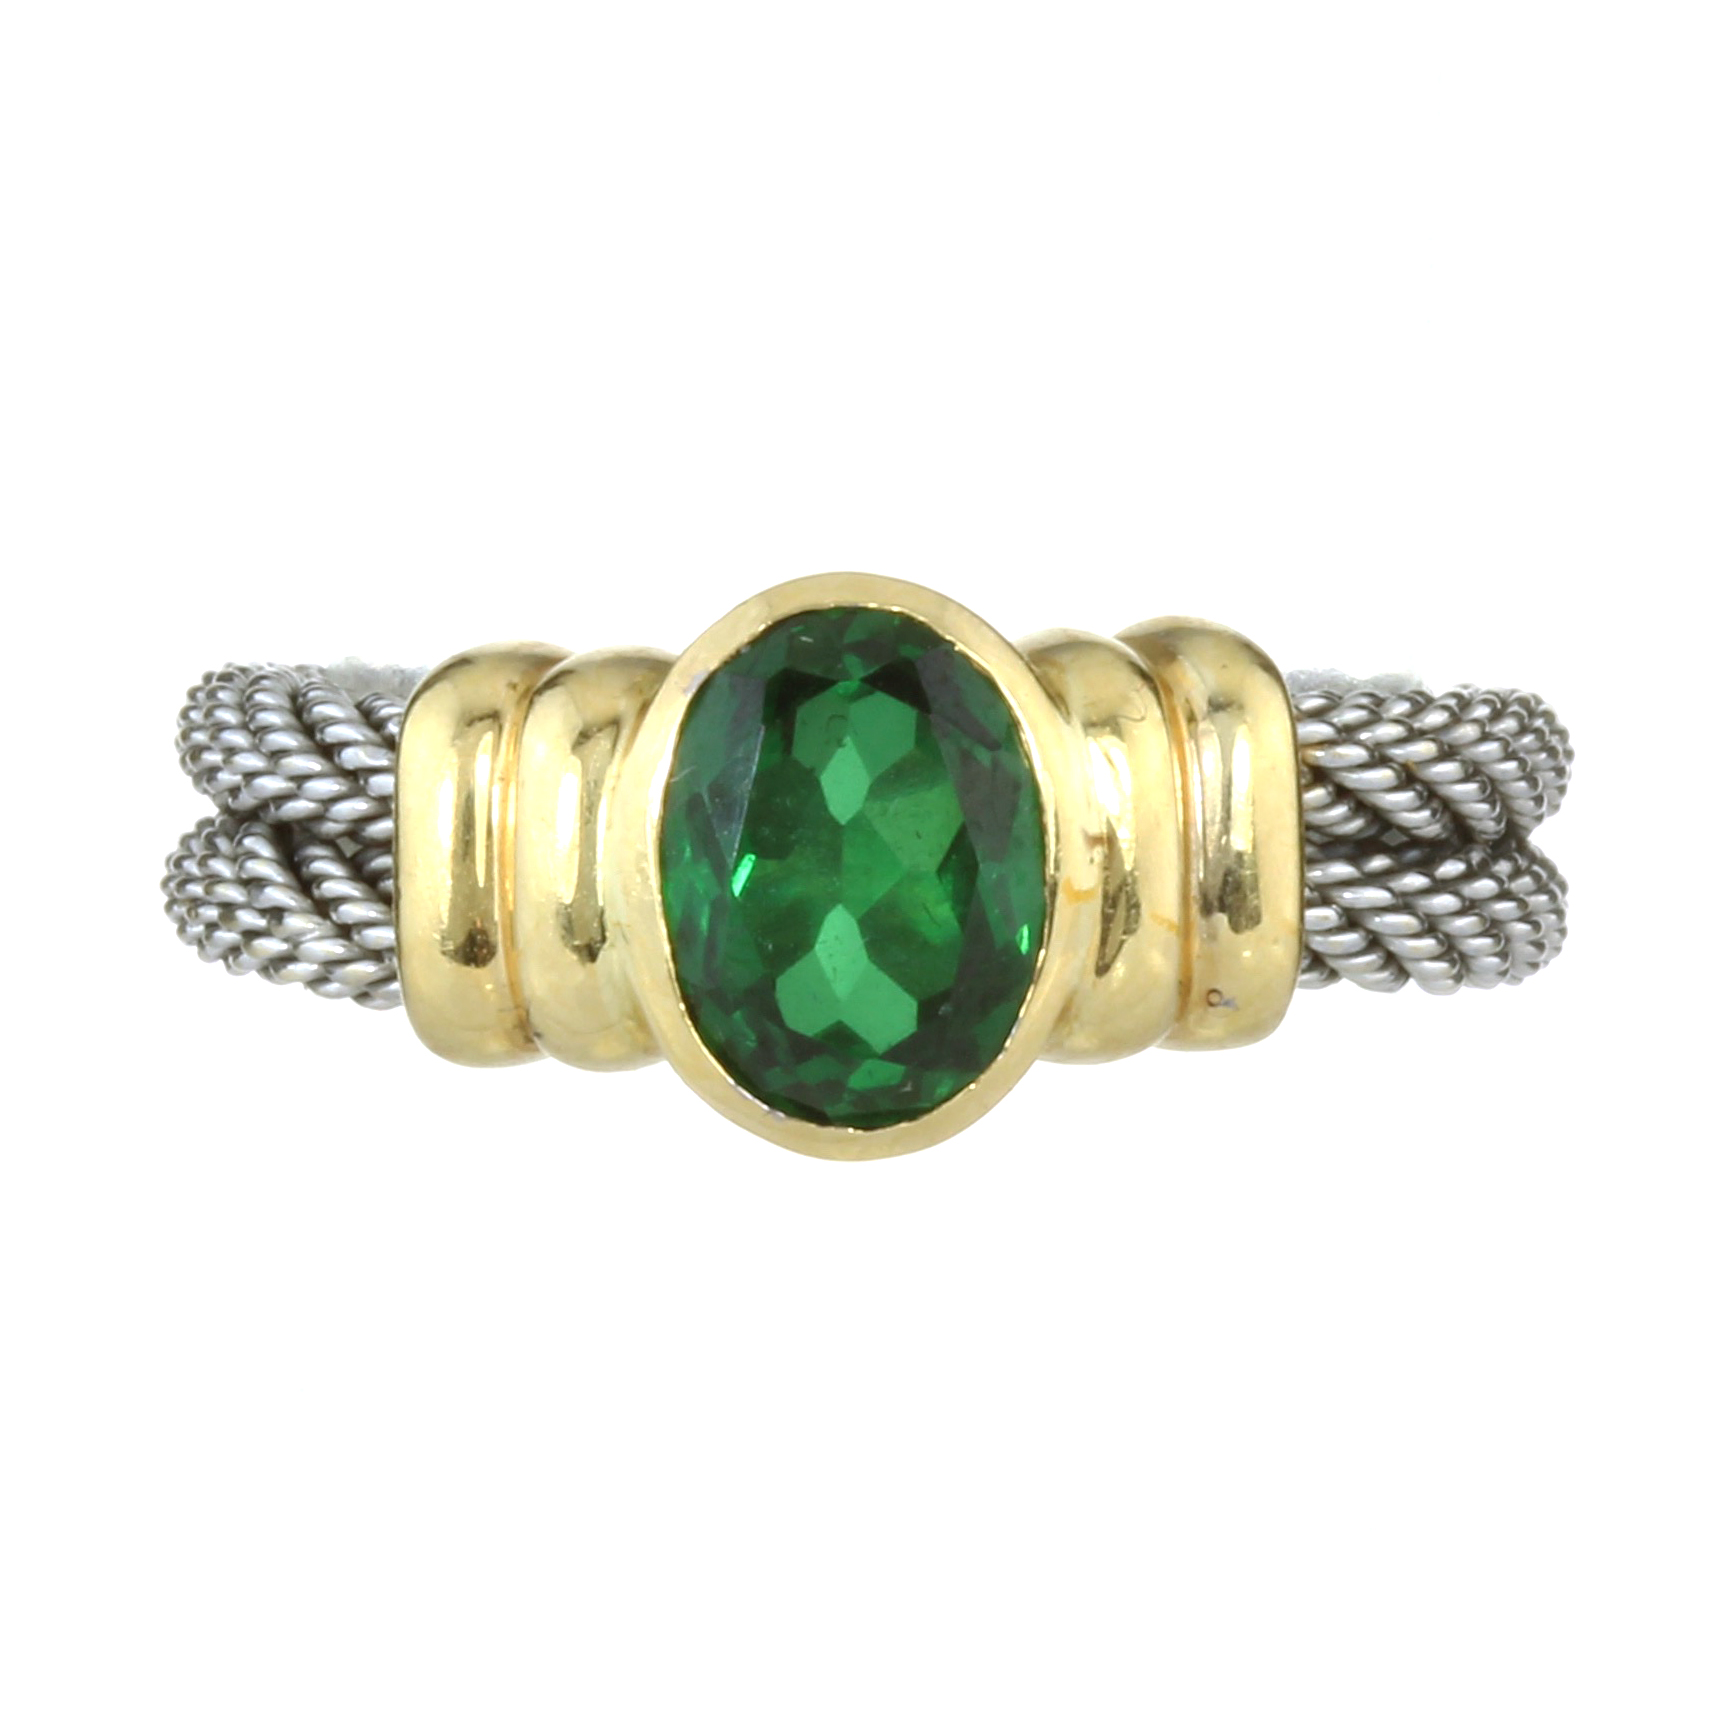 A TOURMALINE DRESS RING in yellow and white gold, the oval green tourmaline collet set between